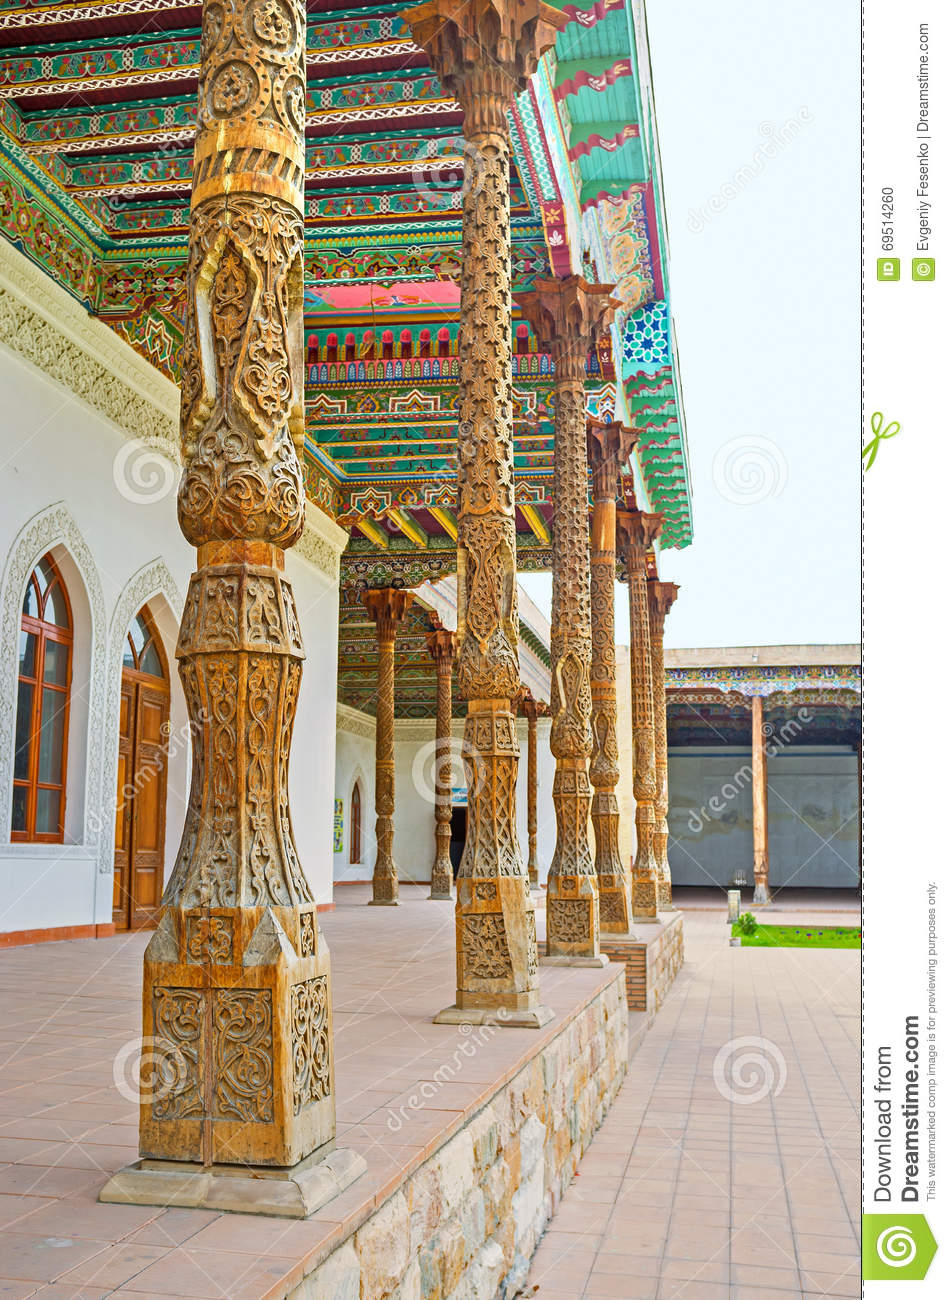 Visiting The Jami Mosque Of Kokand Editorial Image.